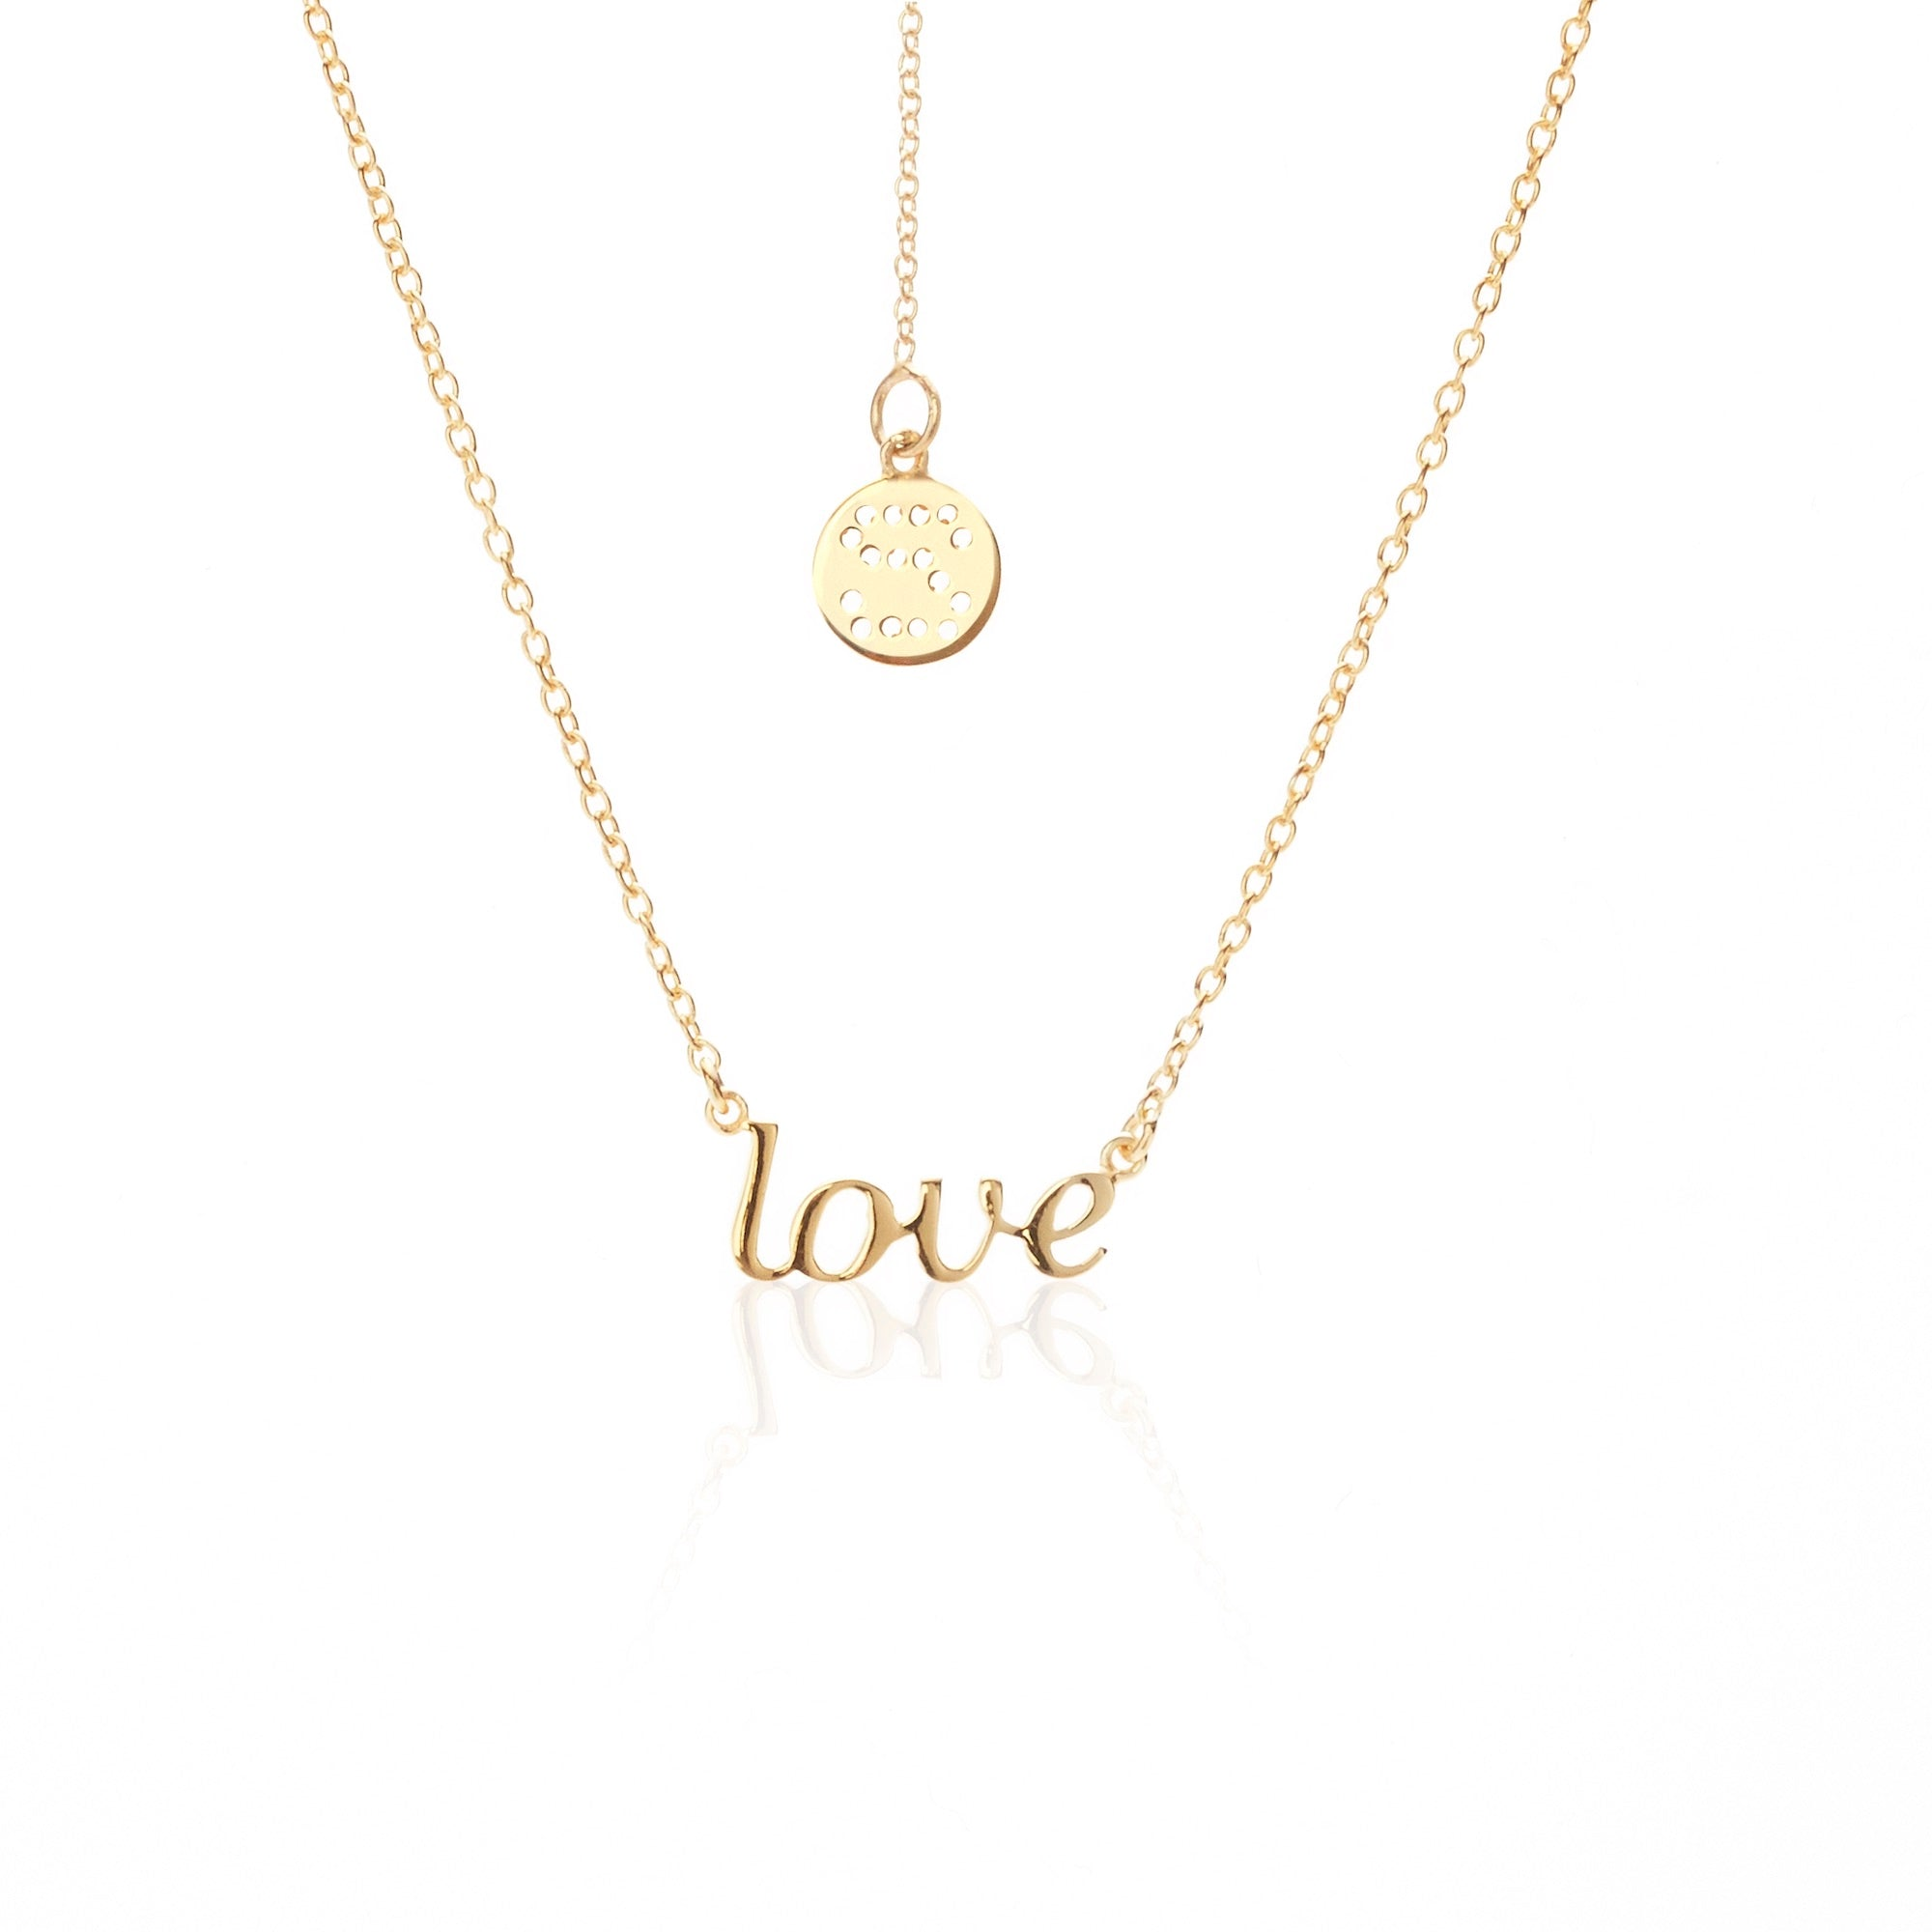 Silk & Steel Jewellery Superfine LOVE Gold Sterling Silver Necklace